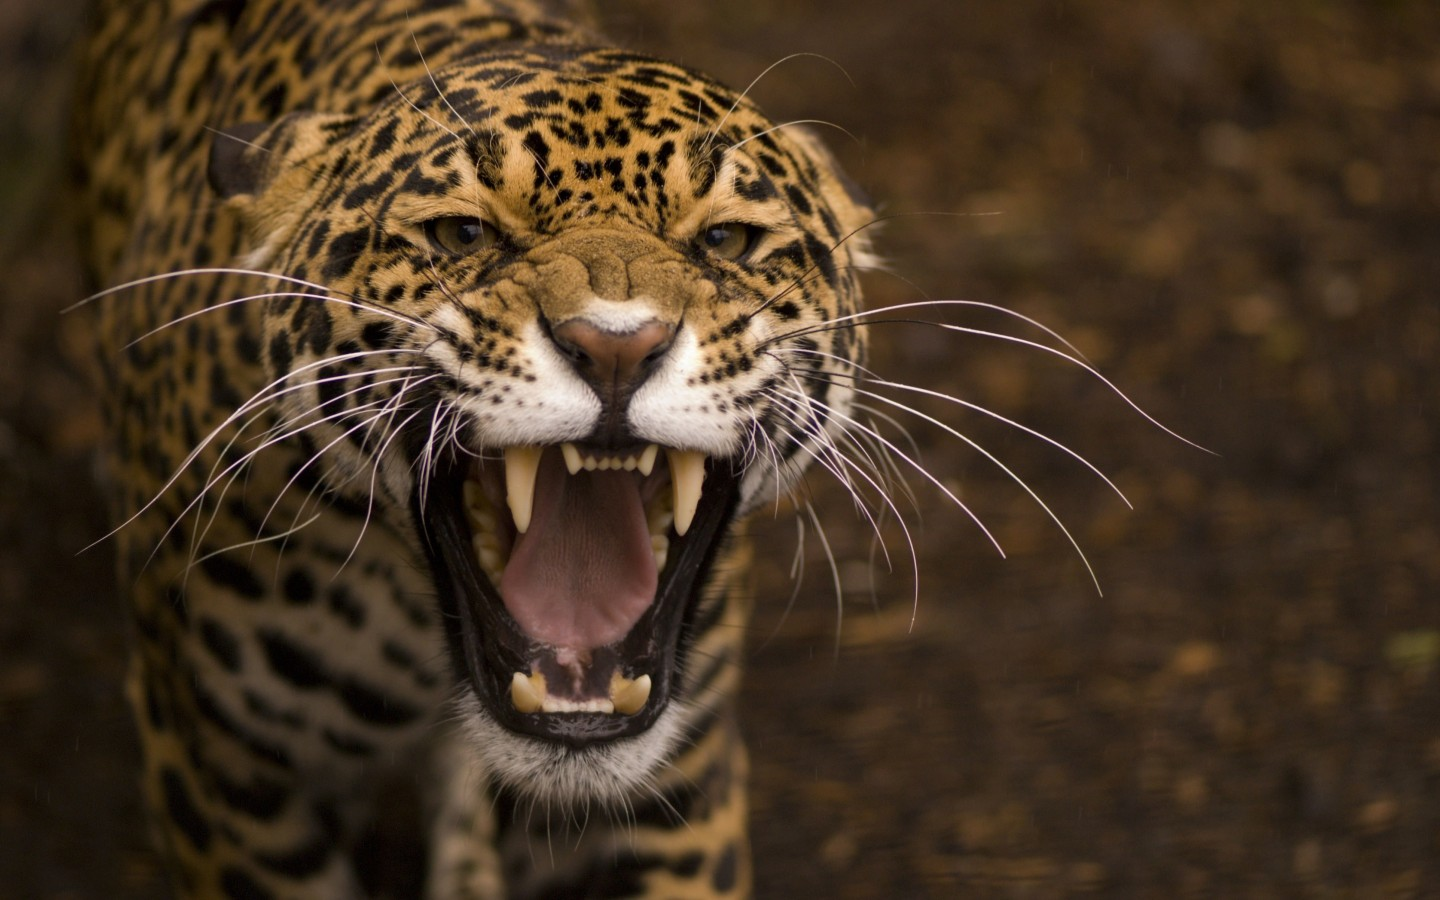 Growling Jaguar Wallpaper for Desktop 1440x900